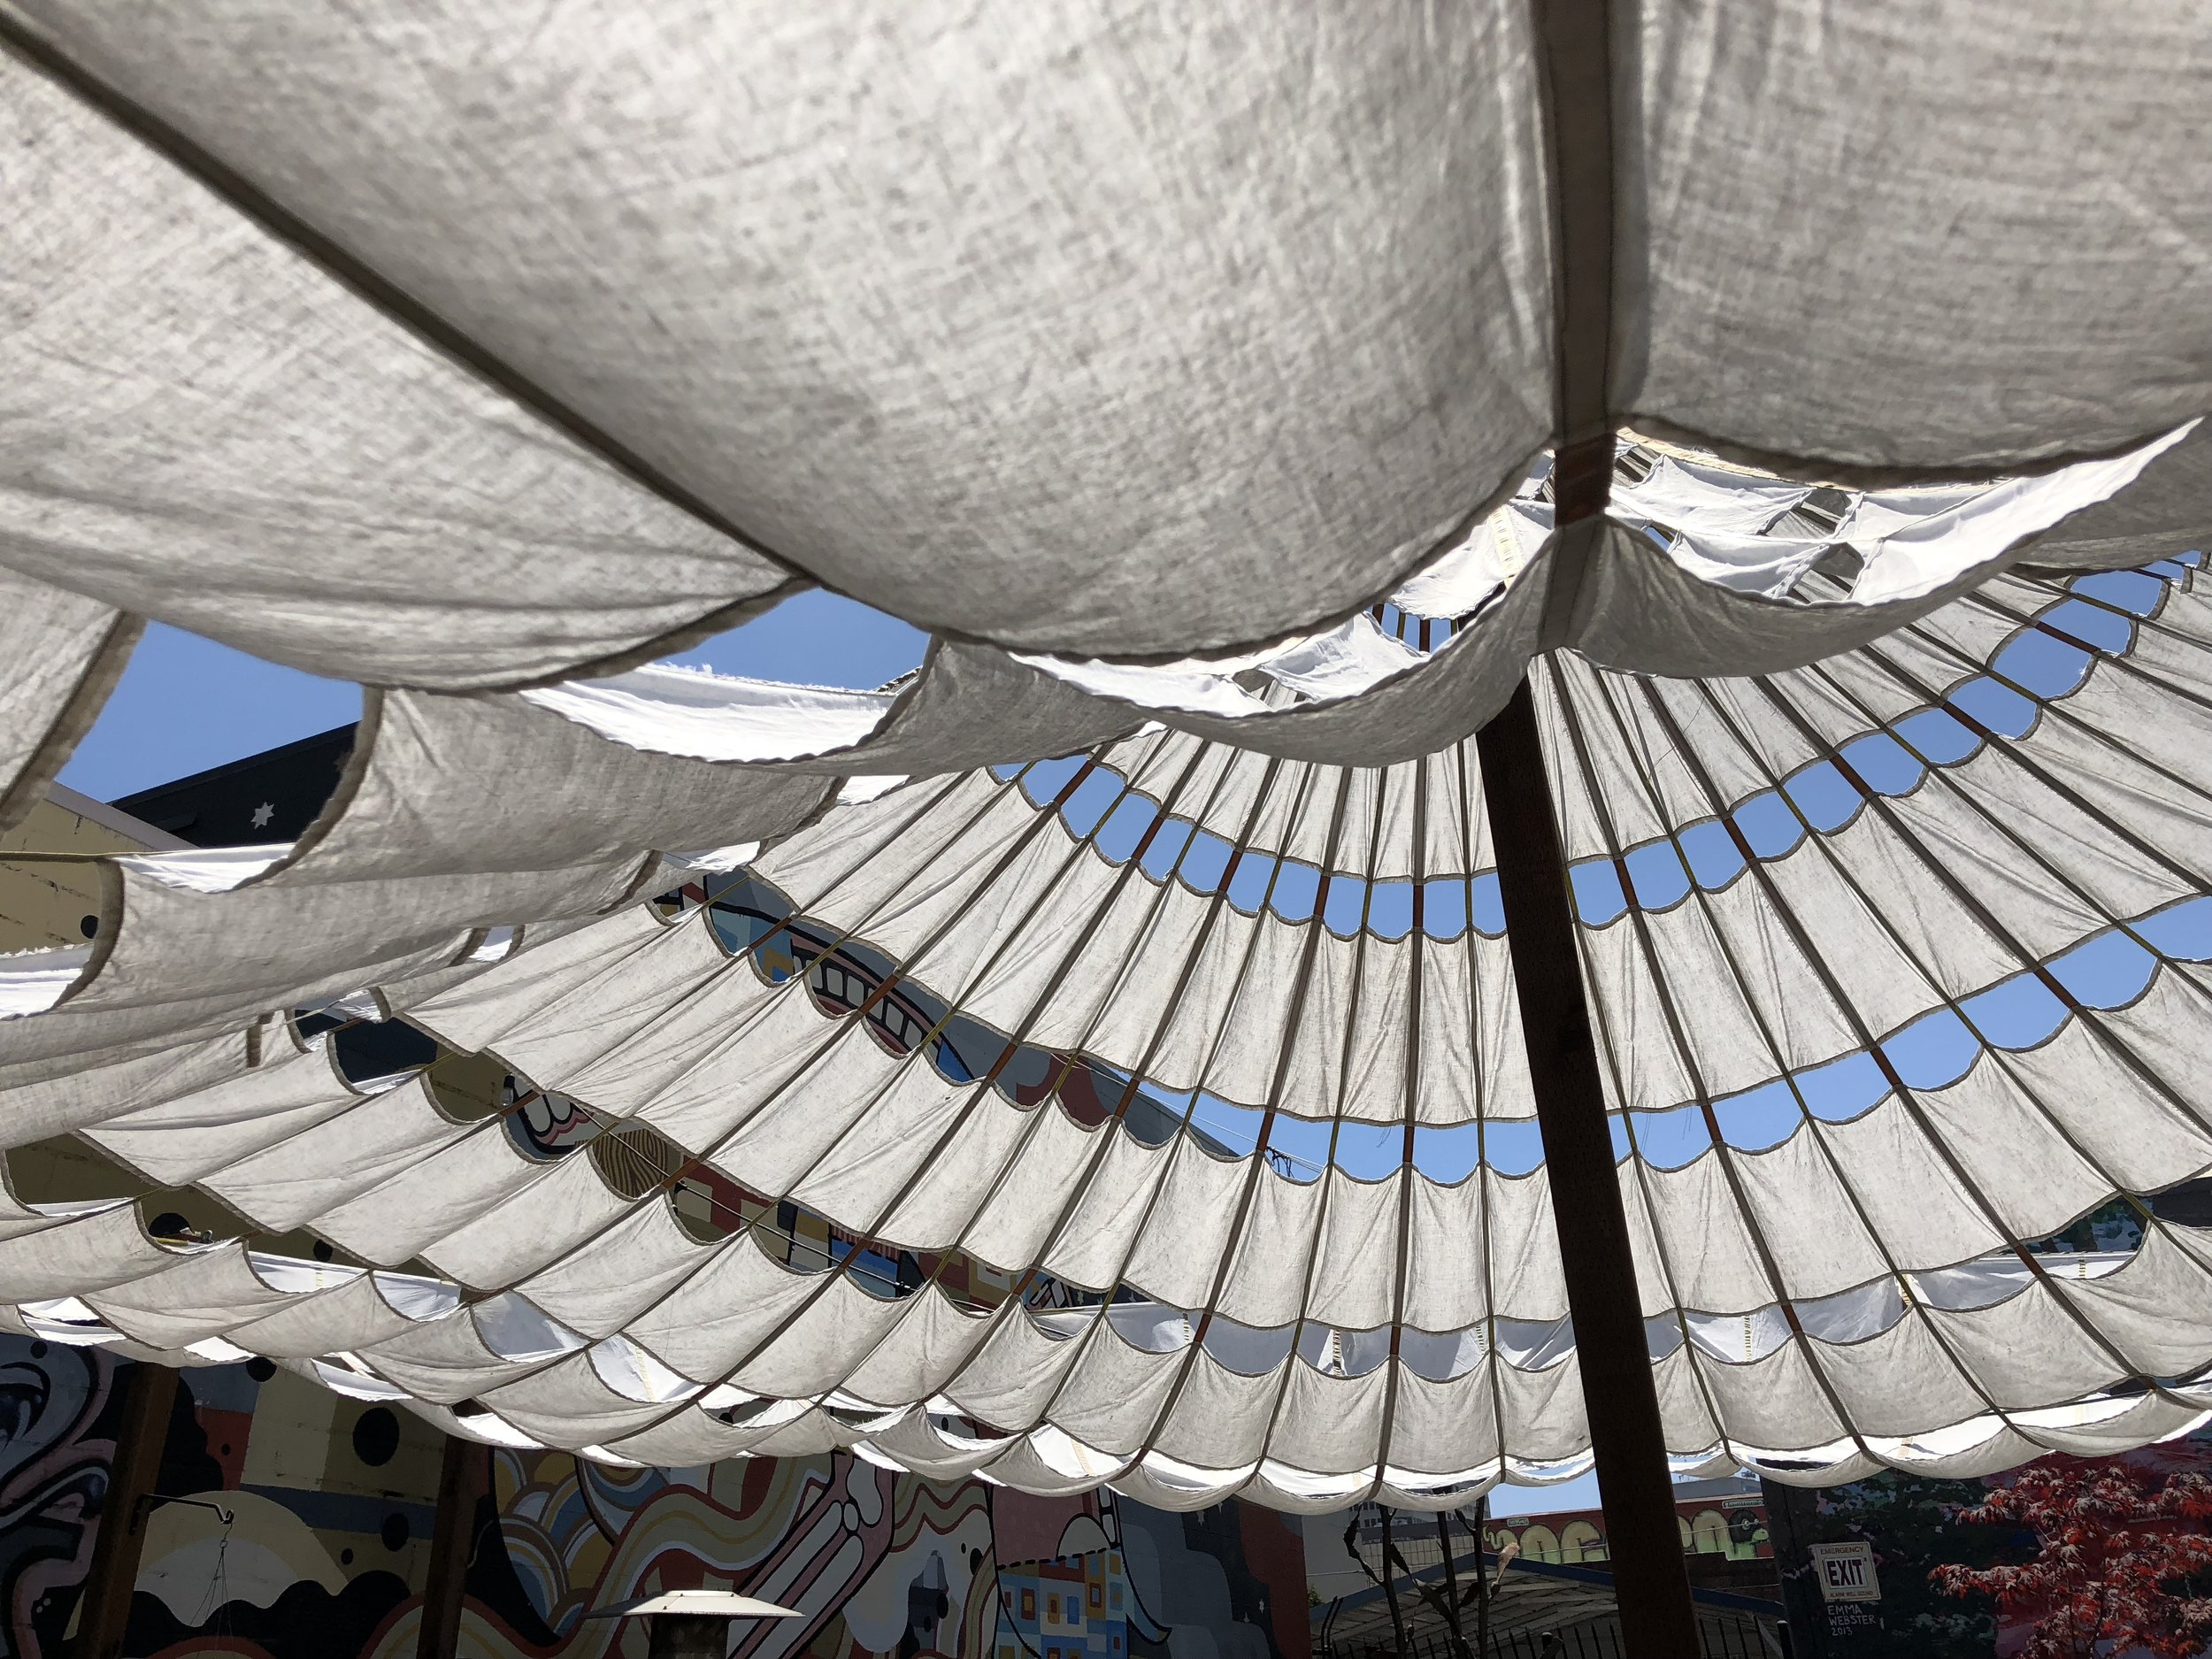 The parachute umbrella billowing in the breeze....